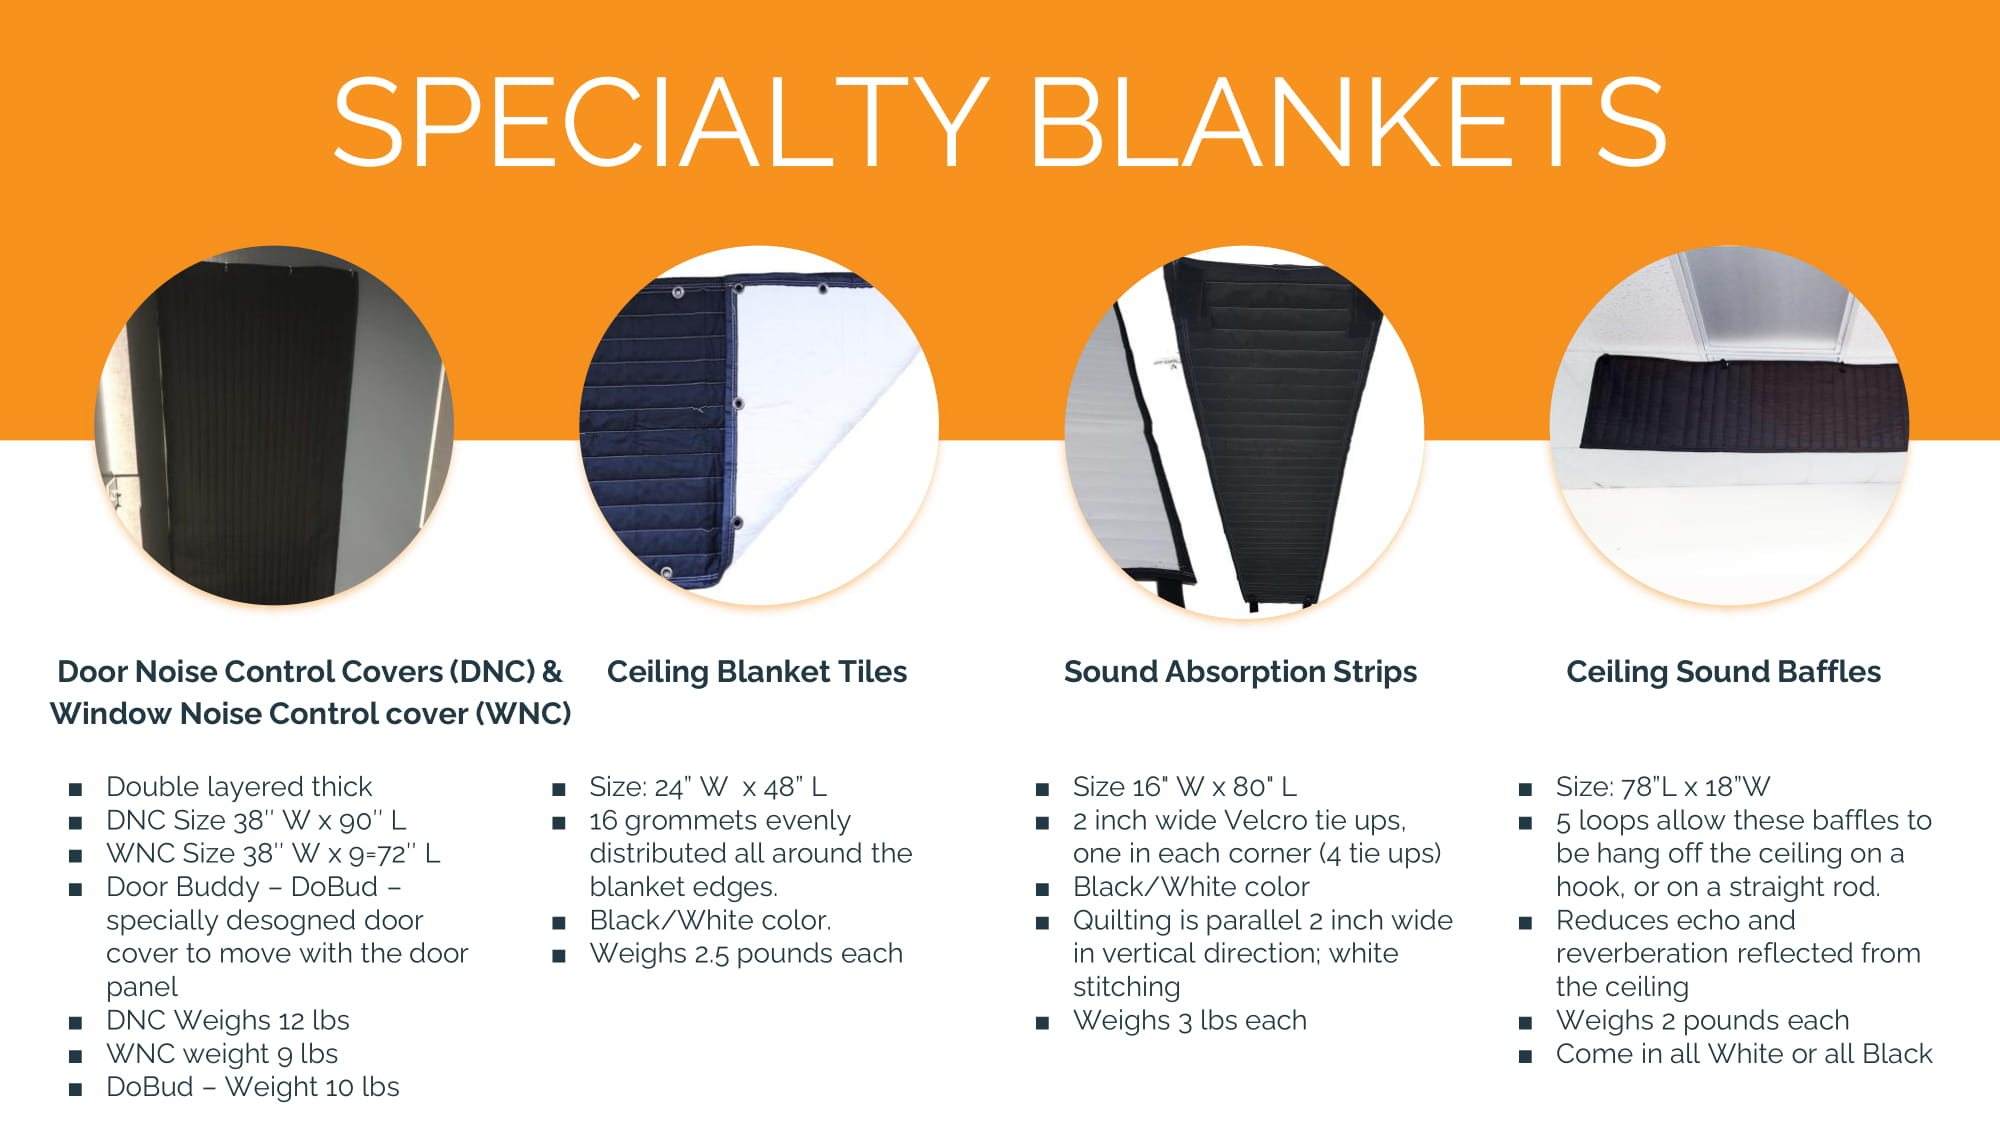 SPECIALTY BLANKETS